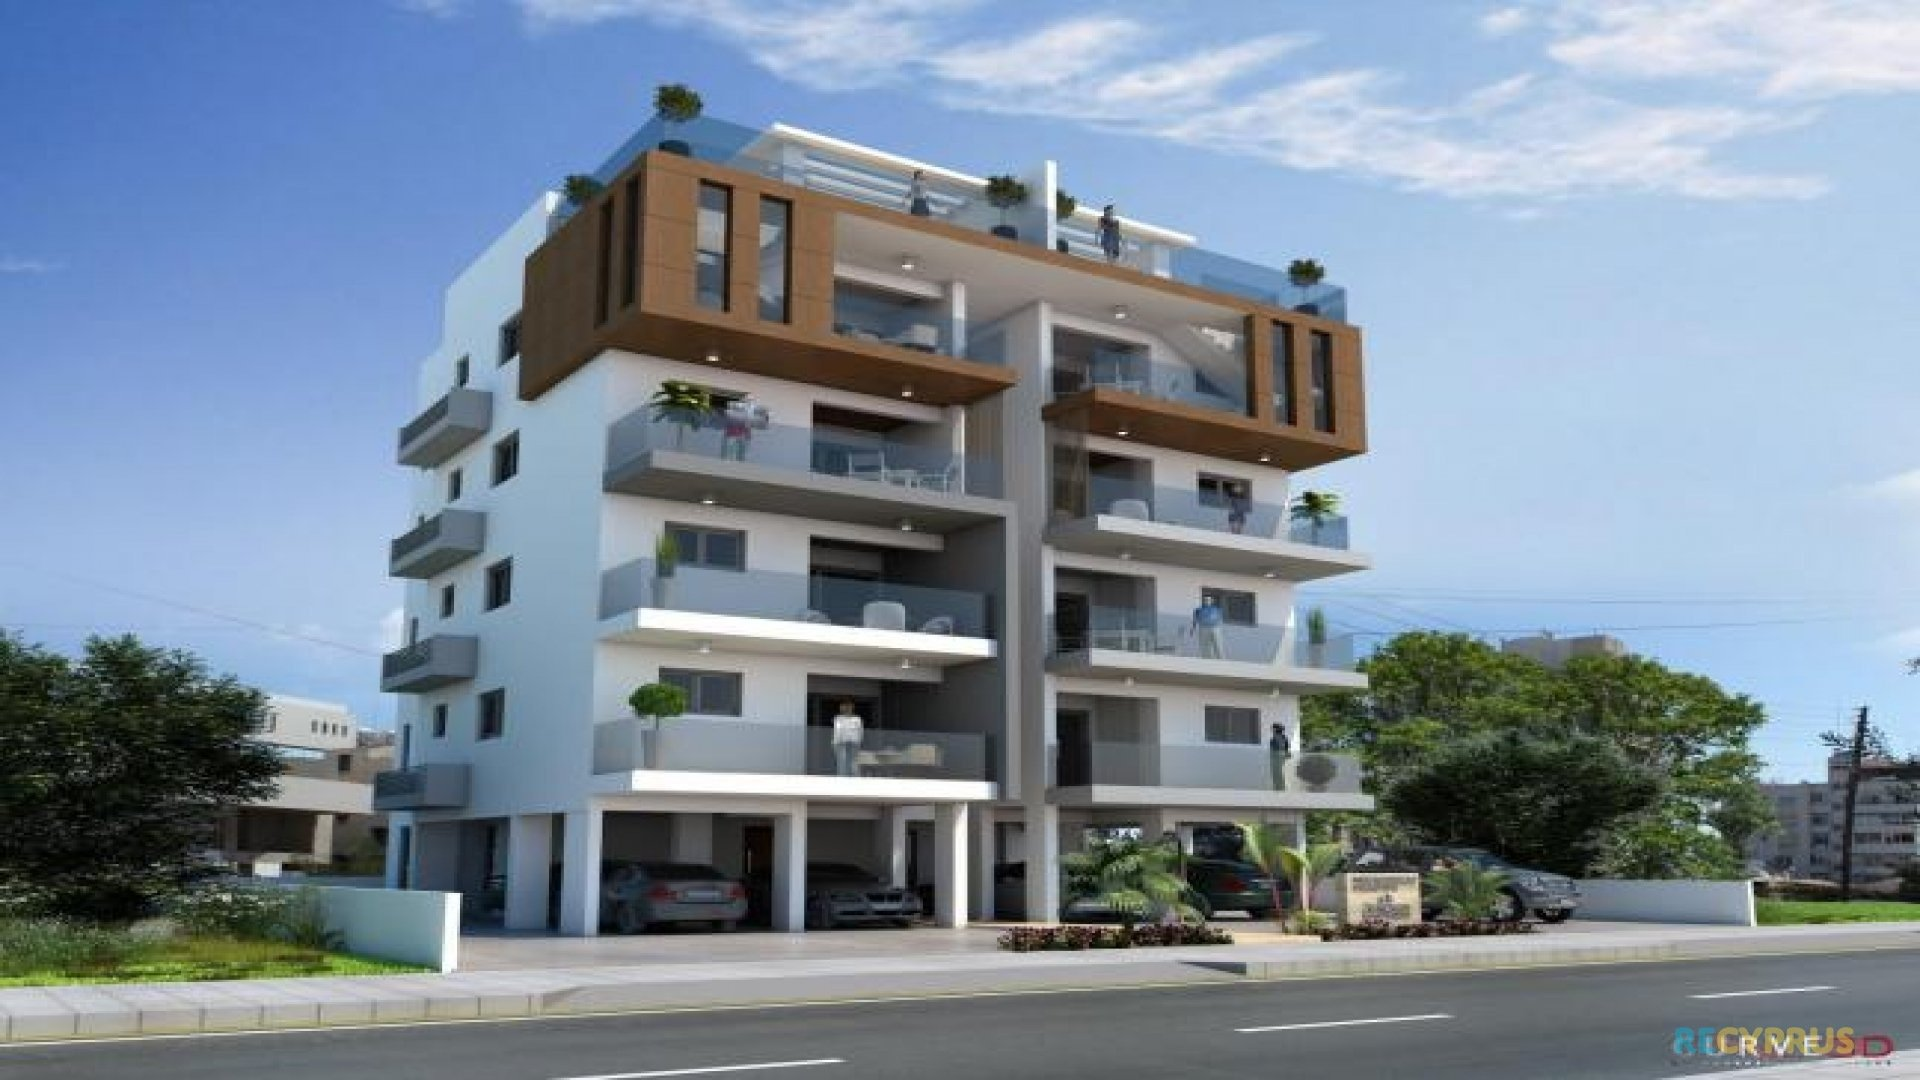 Apartment for sale City Center Larnaca Cyprus 11 3583